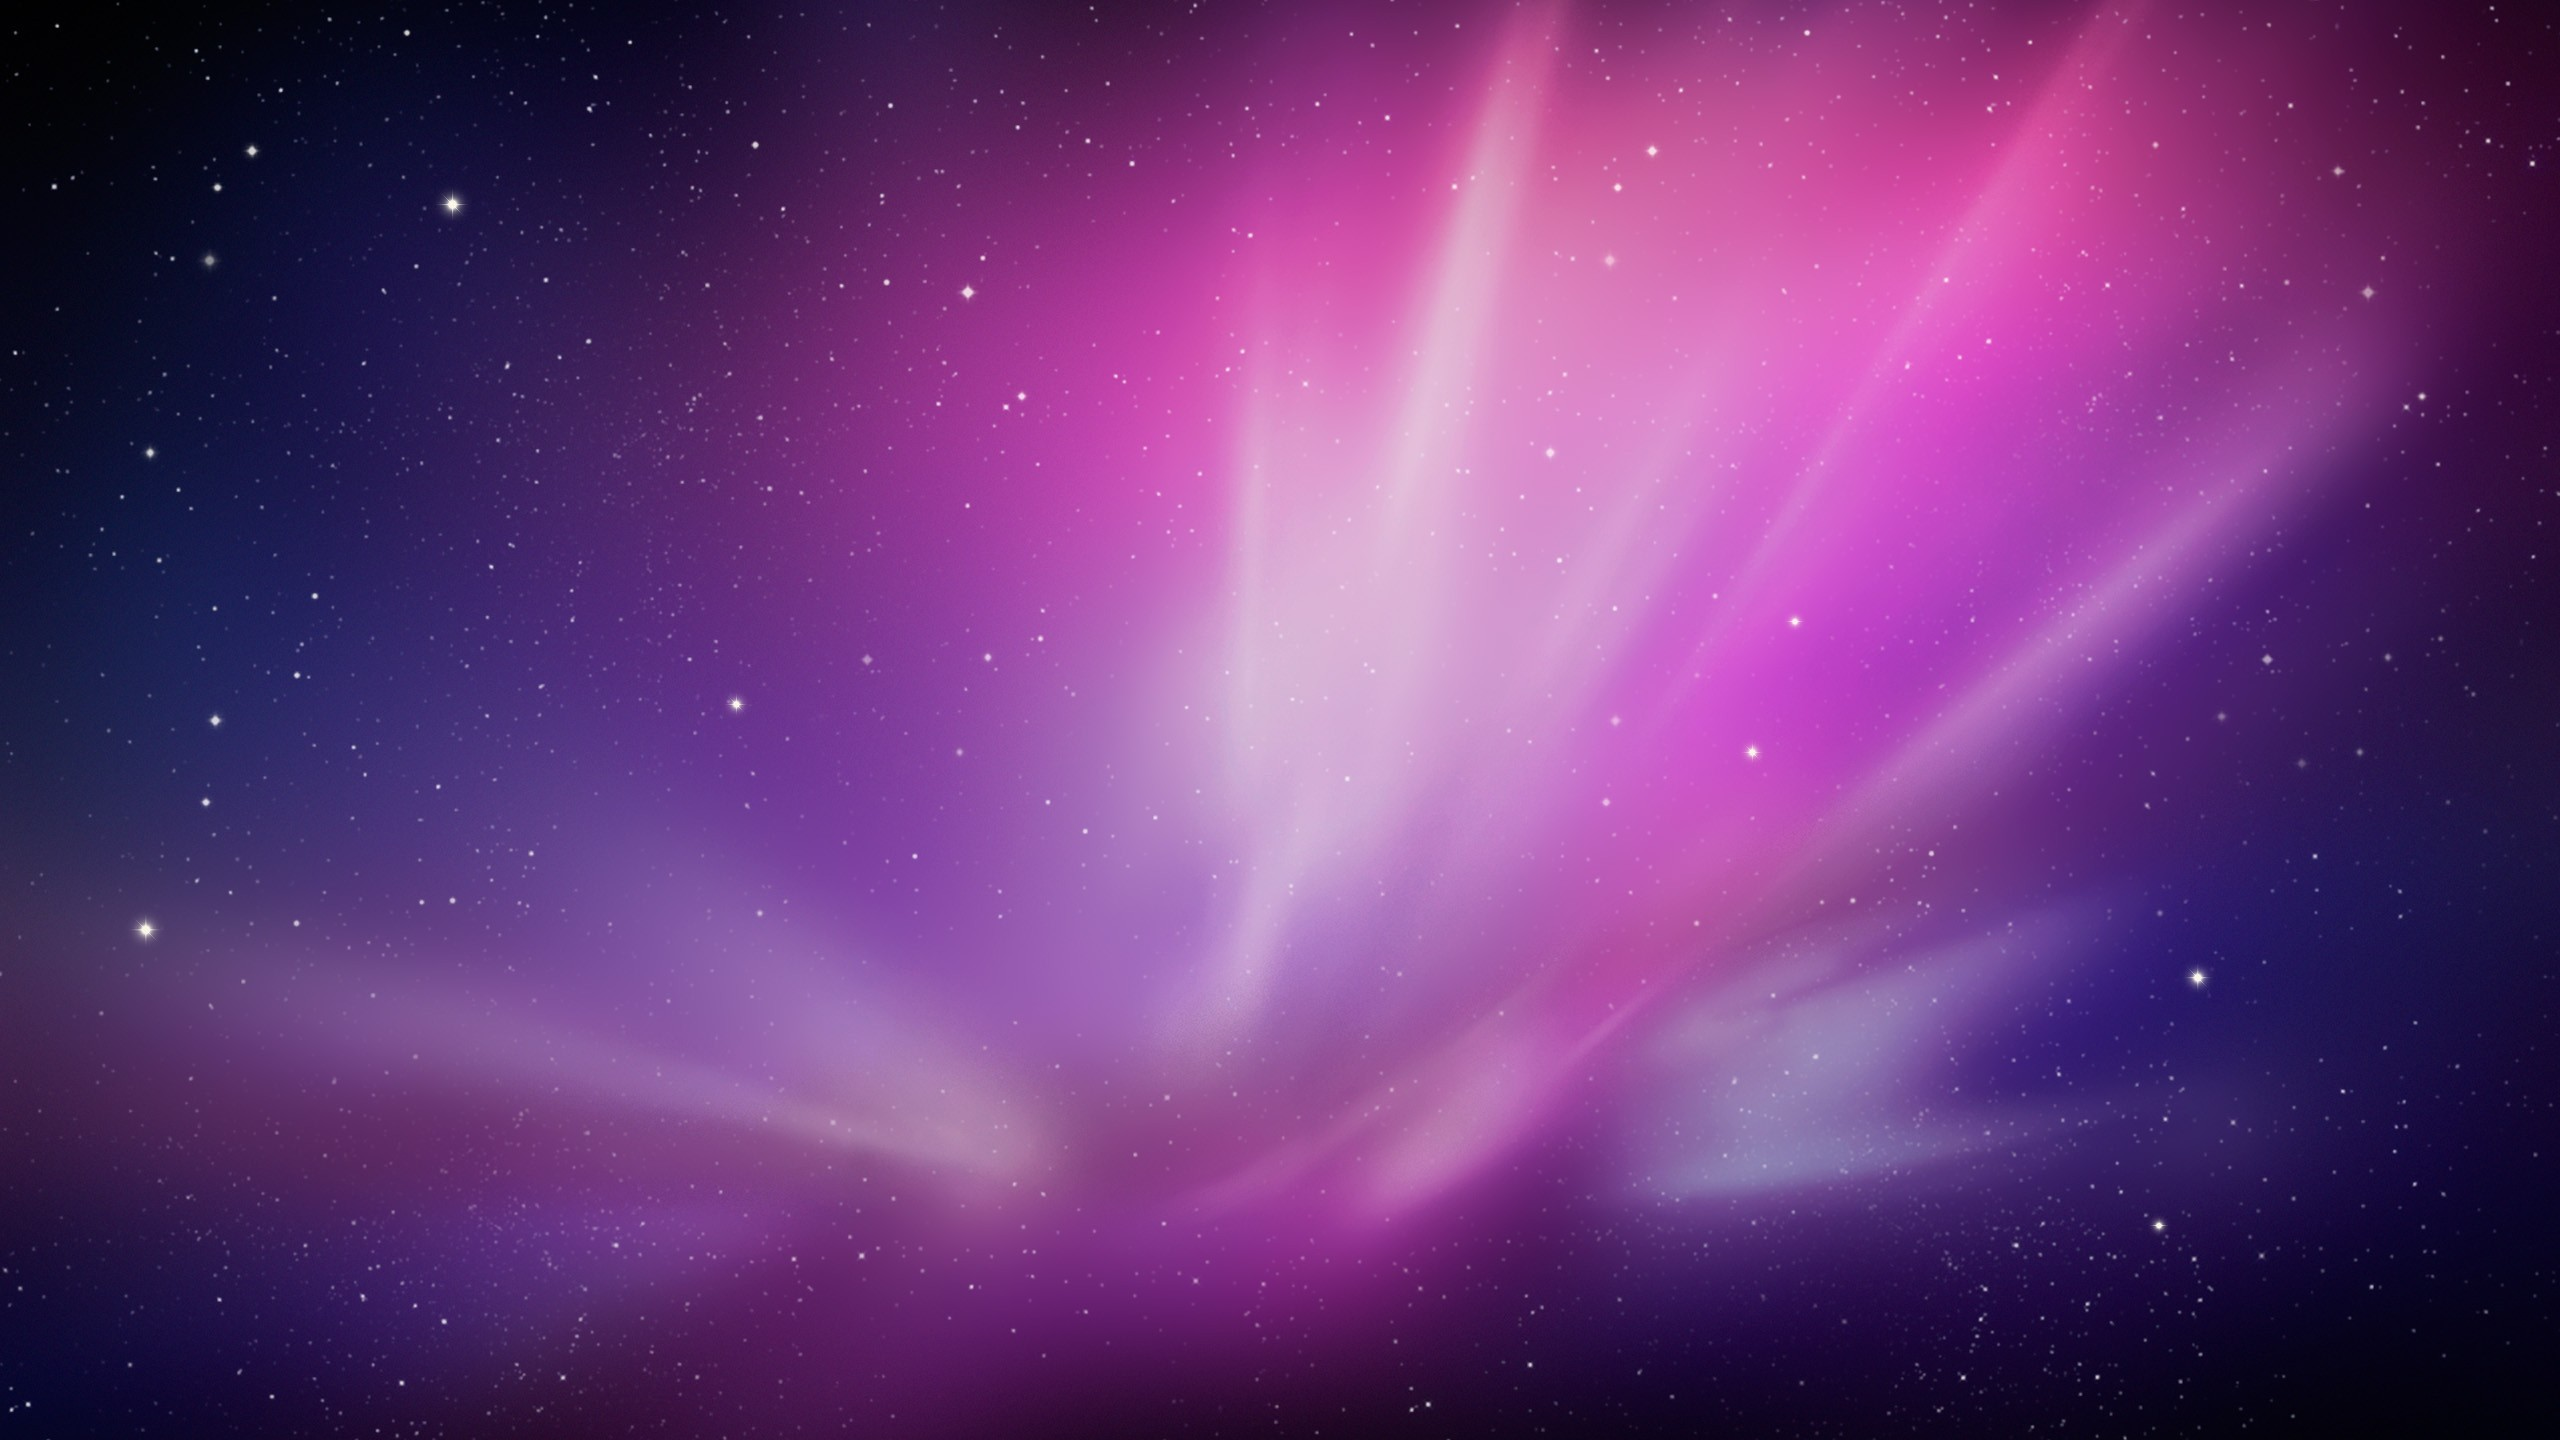 … 2560×1440. Download · Purple Galaxy Wallpaper from the Osx Mac